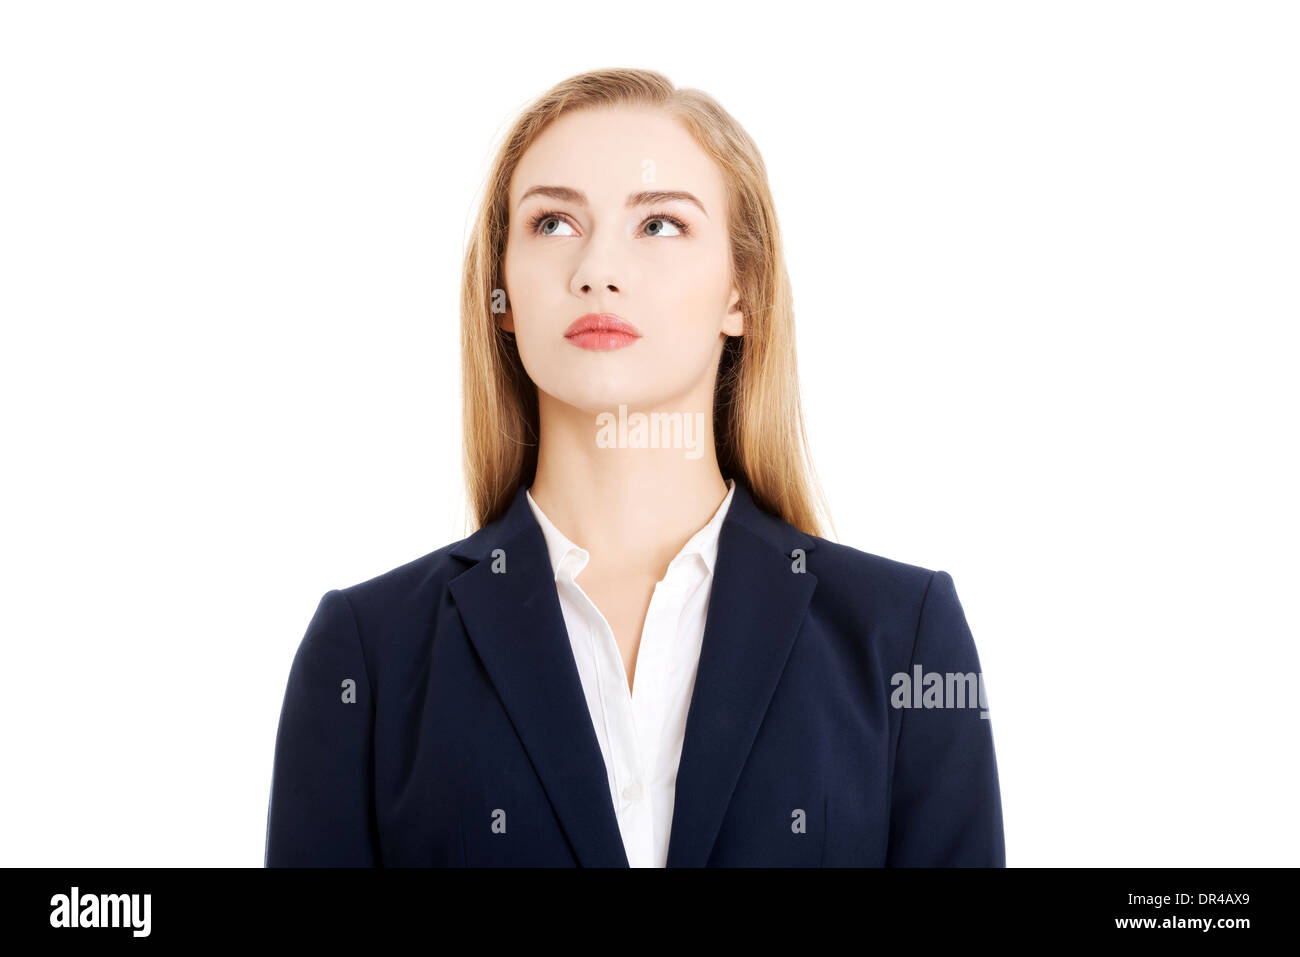 Beautiful business woman looking up at copy space. Isolated on white. - Stock Image